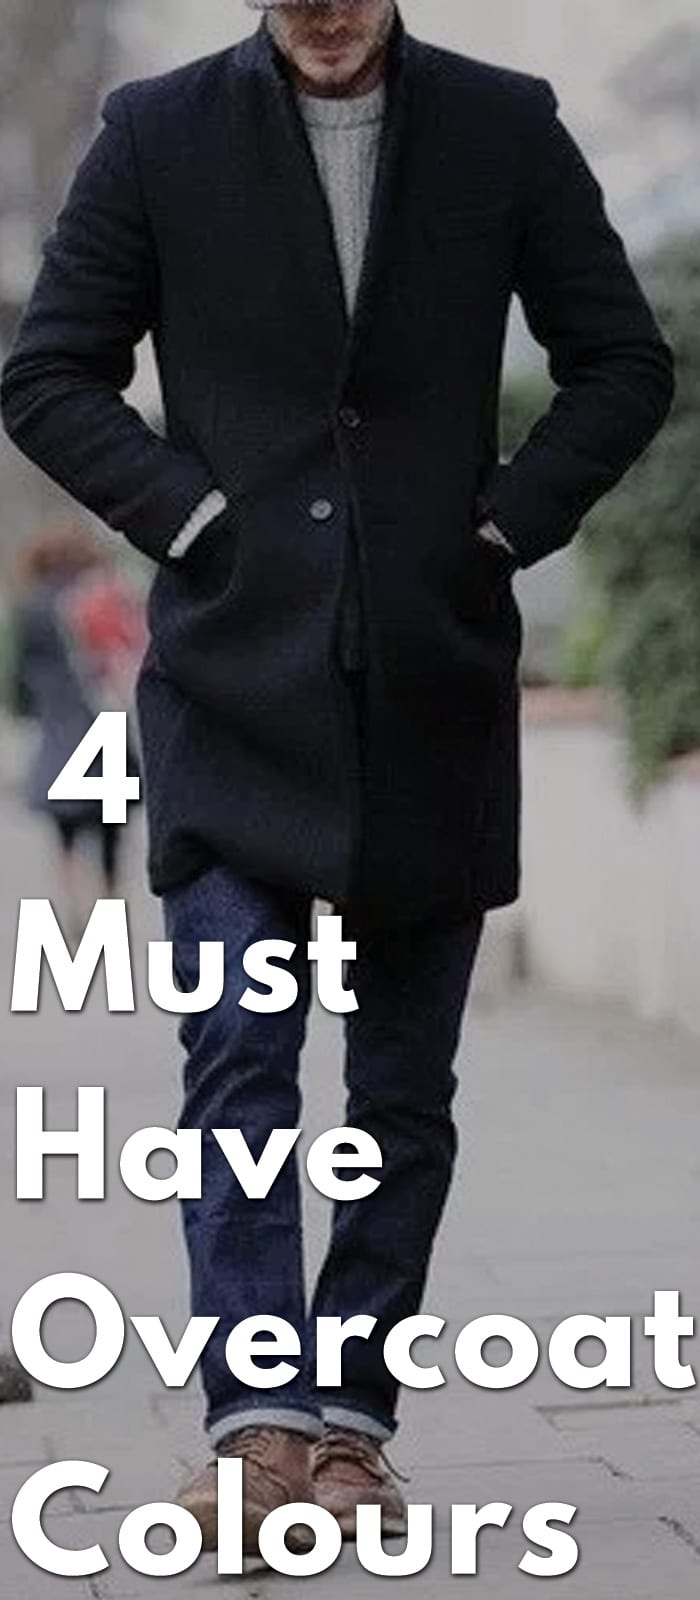 4-Must-Have-Overcoat-Colours